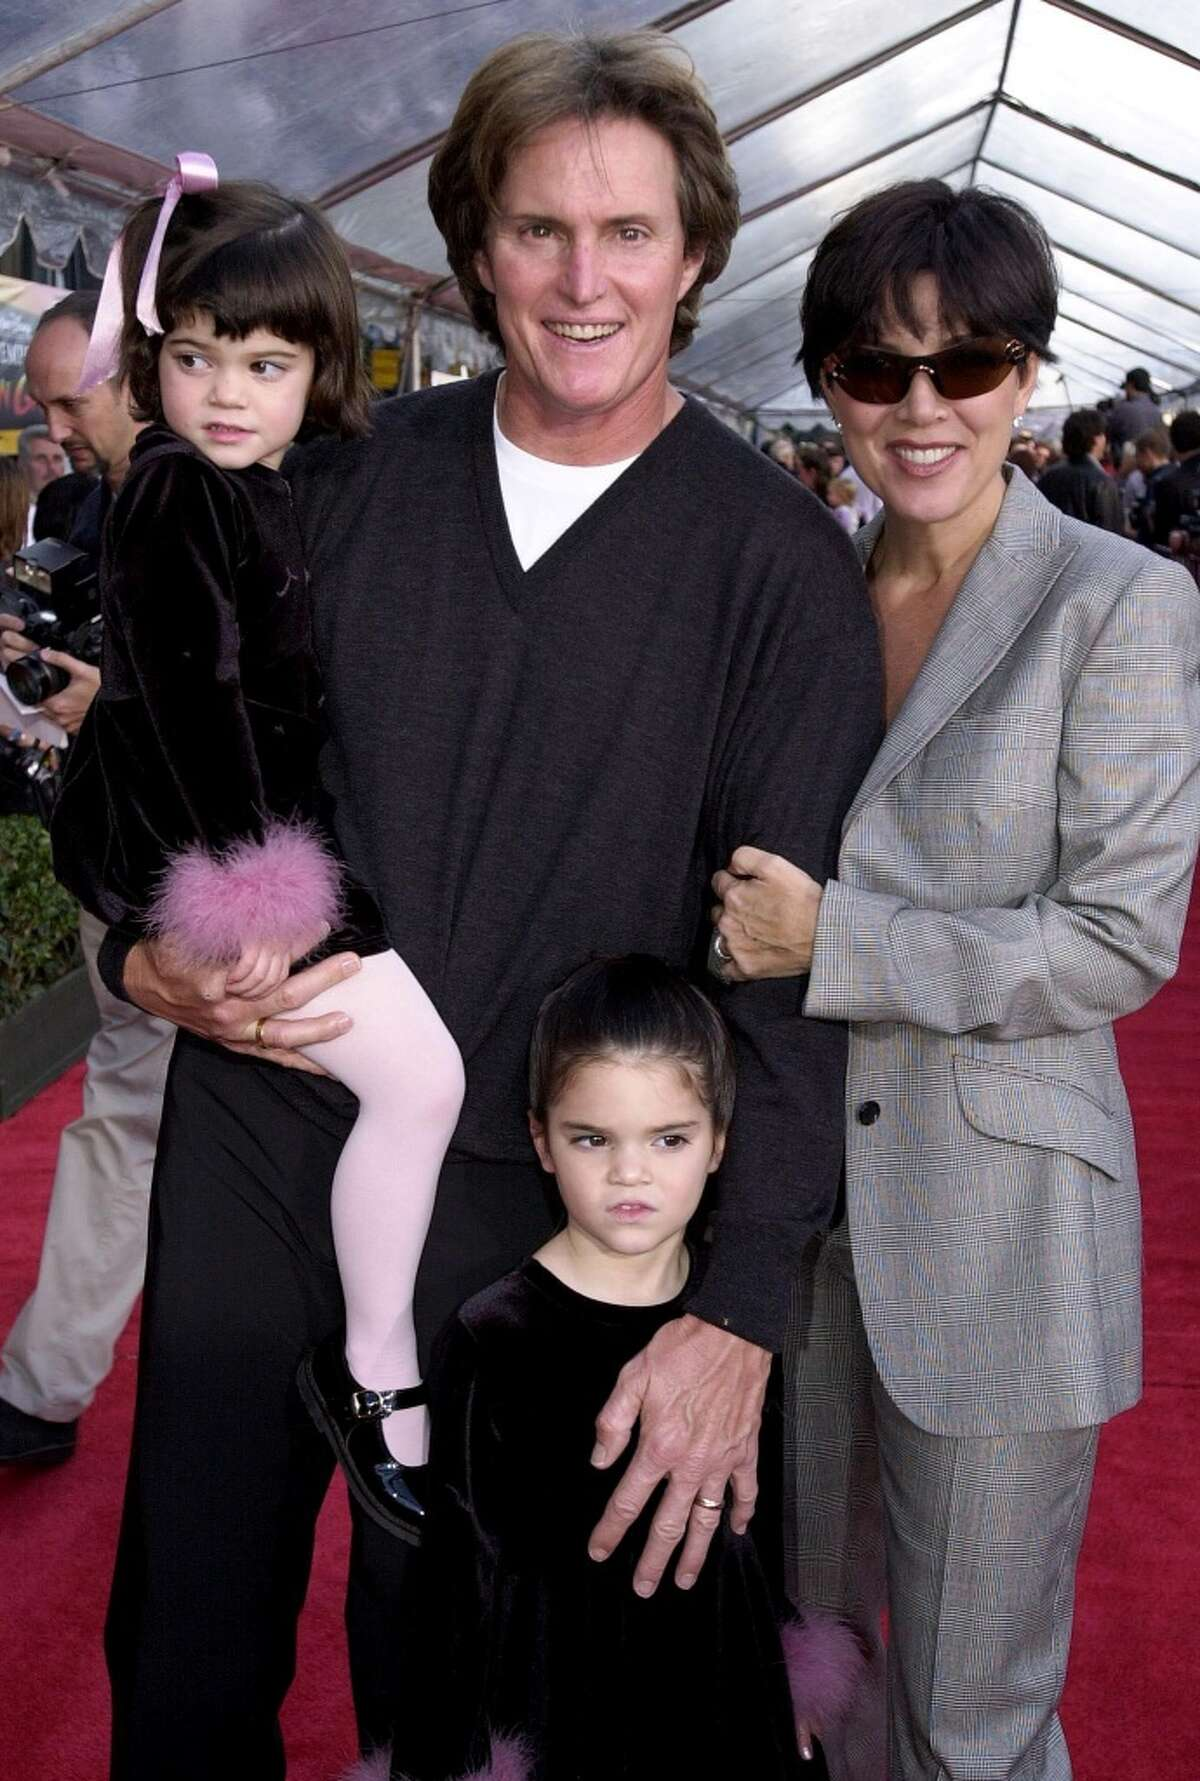 ormer US gold medal decathlete Bruce Jenner (C), his wife Kris (R) and children Kylie (L) and Kendall (BELOW) appear at the, 10 December 2000, premiere of Walt Disney's 'The Emperor's New Groove' at the El Capitan Theater in Hollywood, CA. The film opens in the US on 15 December 2000 AFP Photo/Scott NELSON (Photo credit should read Scott Nelson/AFP/Getty Images)